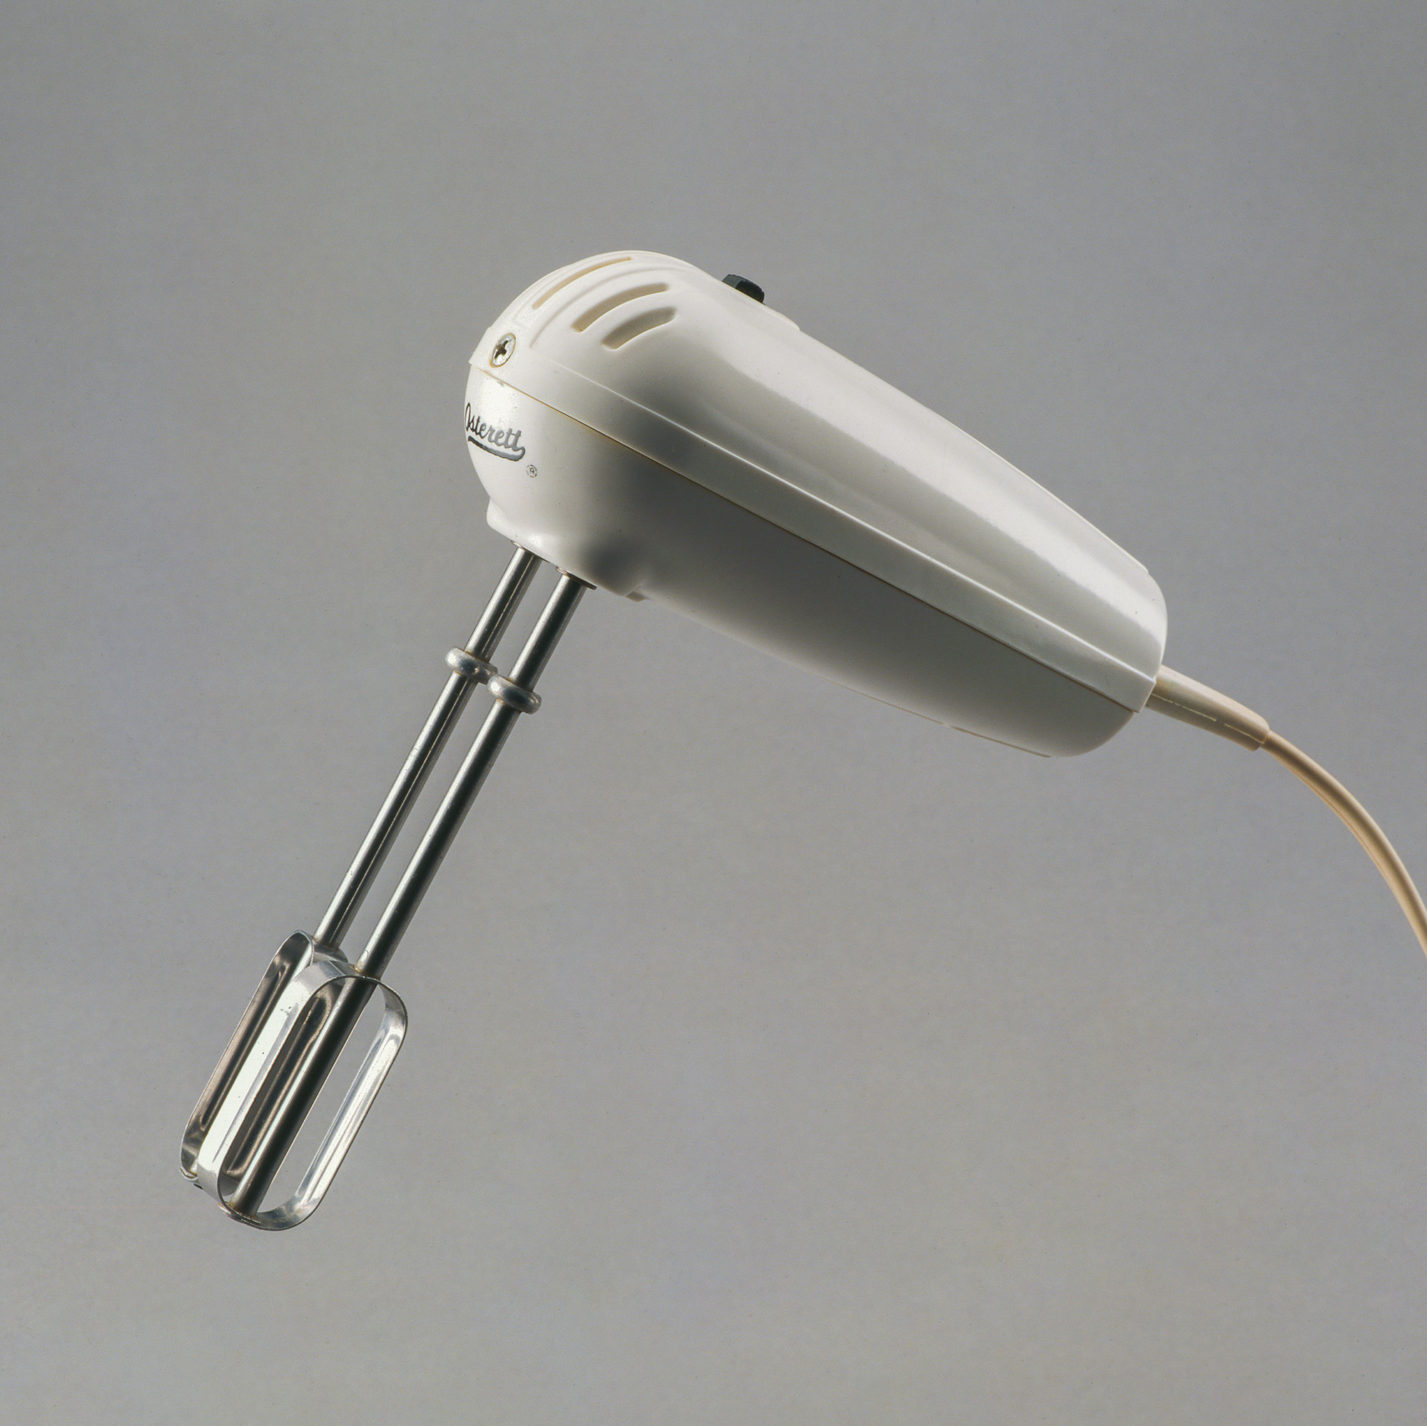 Hand mixer with peg-shaped white plastic body and two metal beaters.